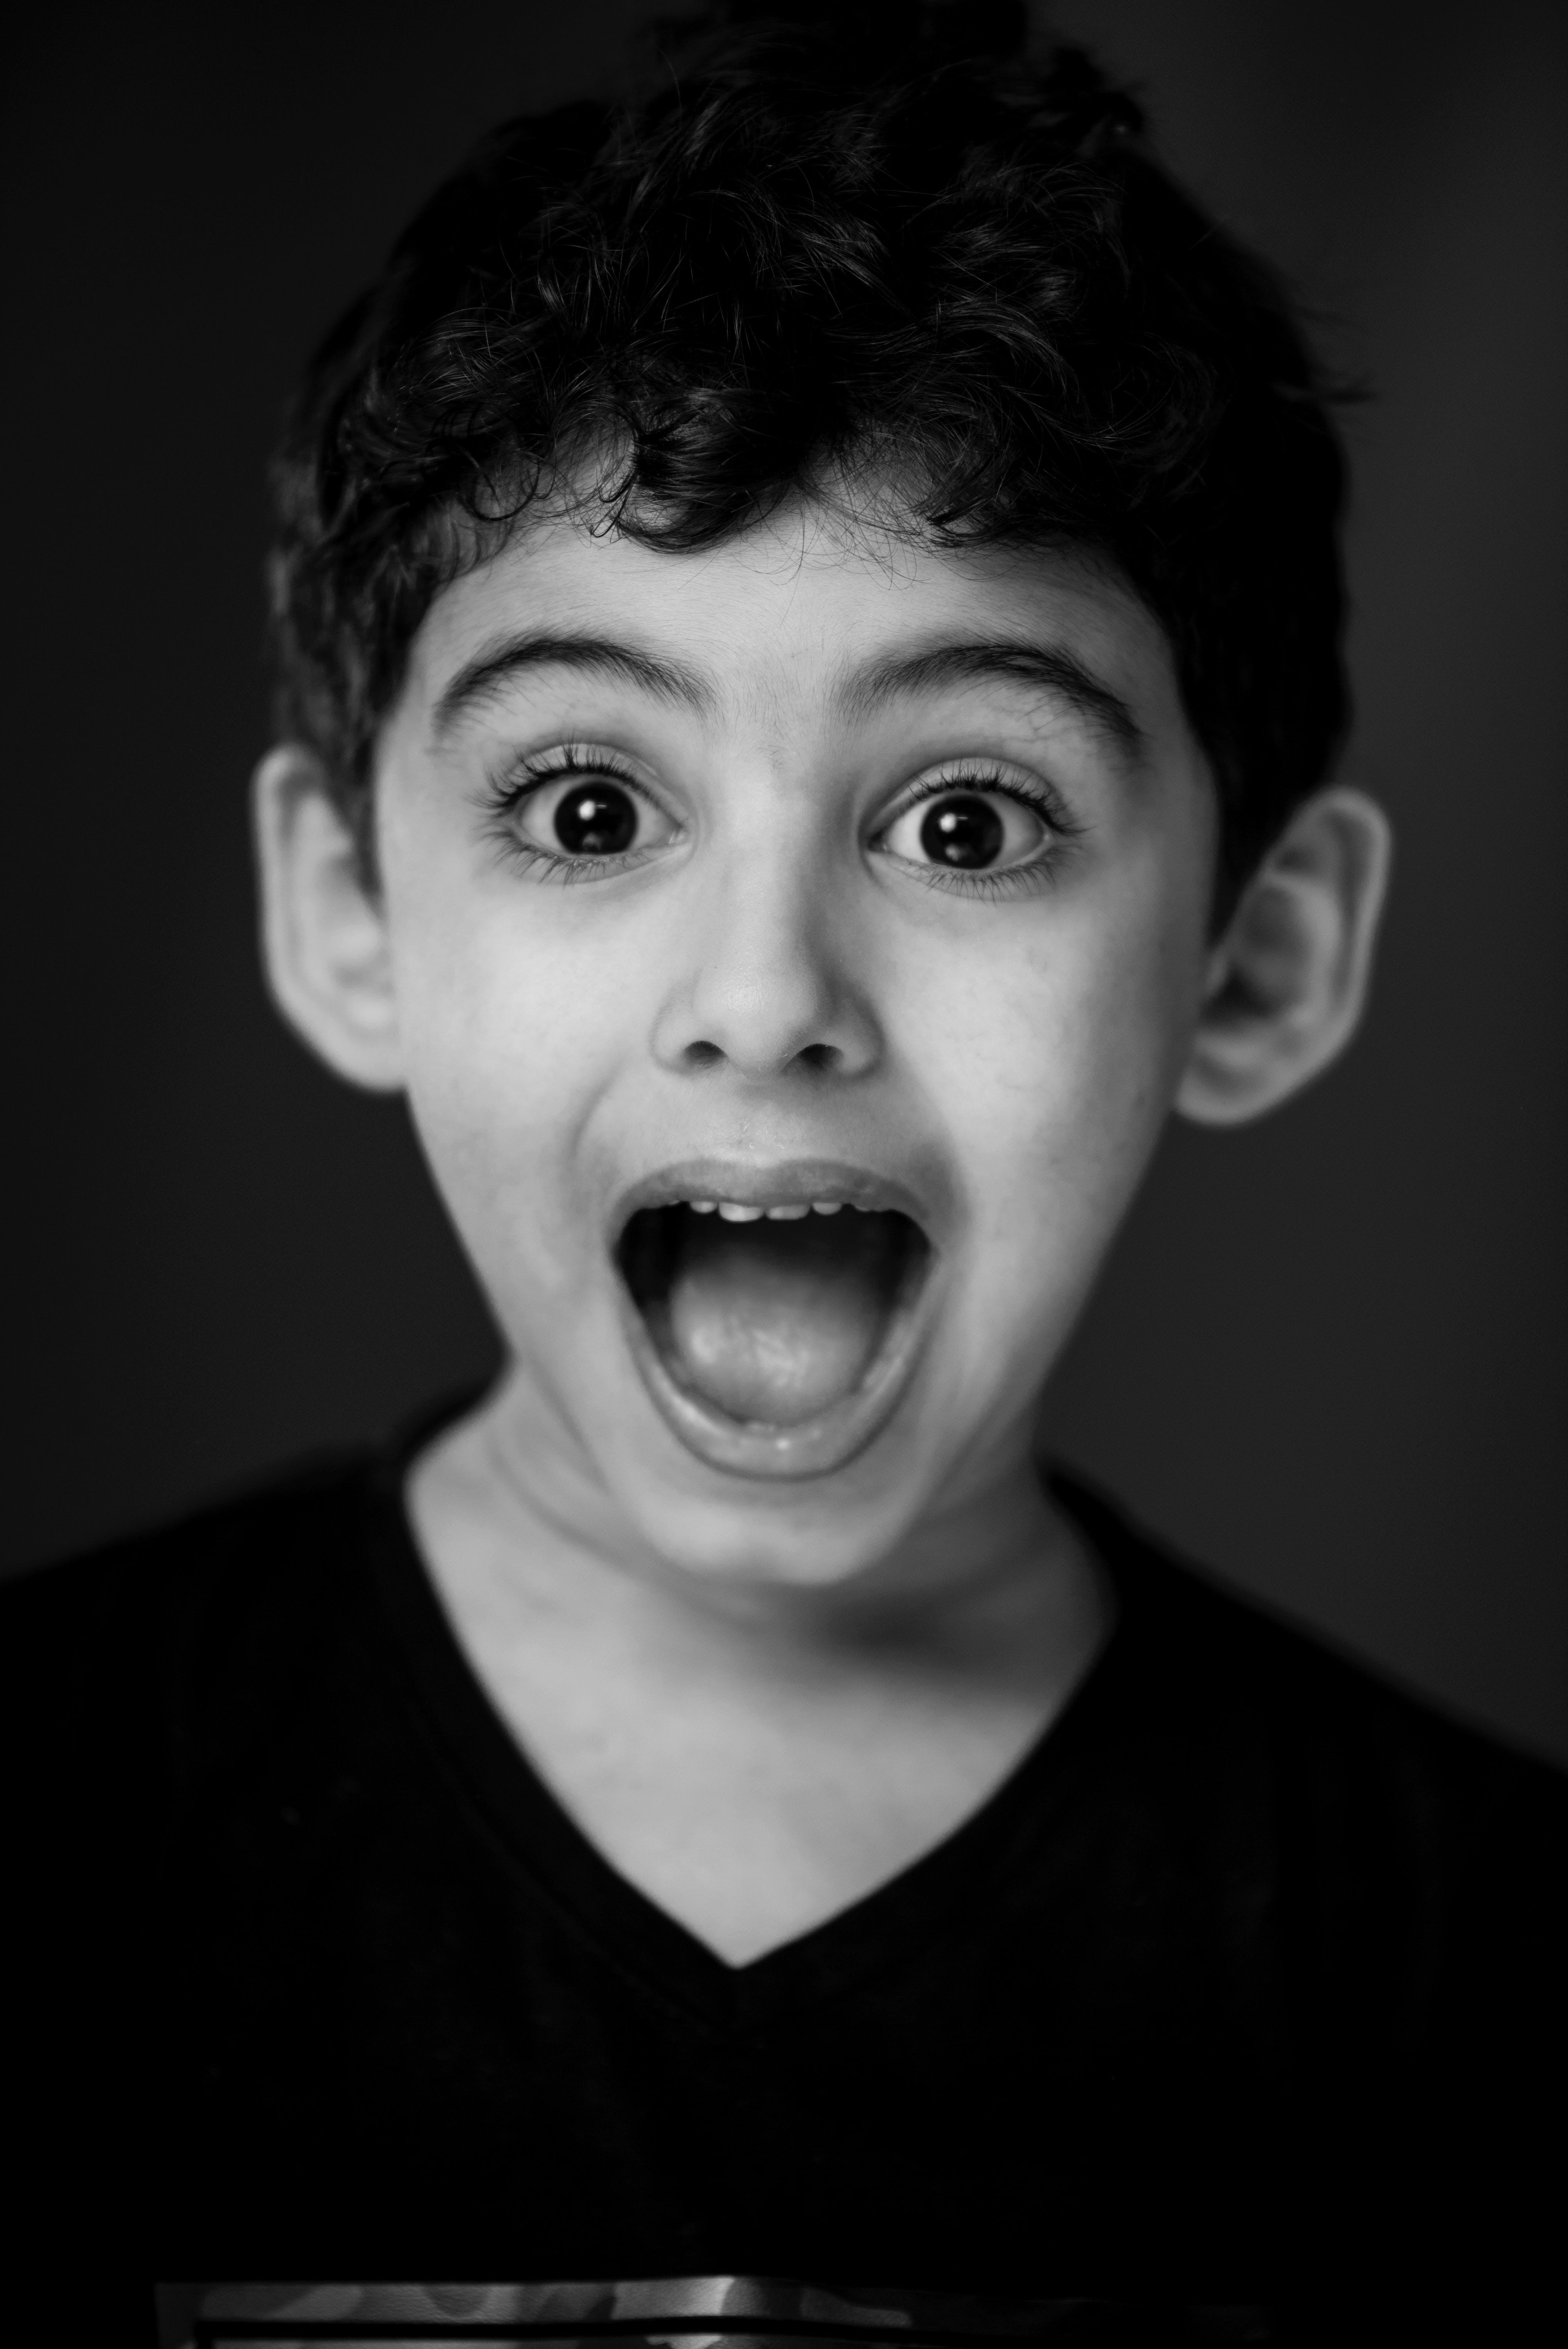 Boy in Black V-neck Shirt With Looking Straight to the Camera With a Shocking Face Expression